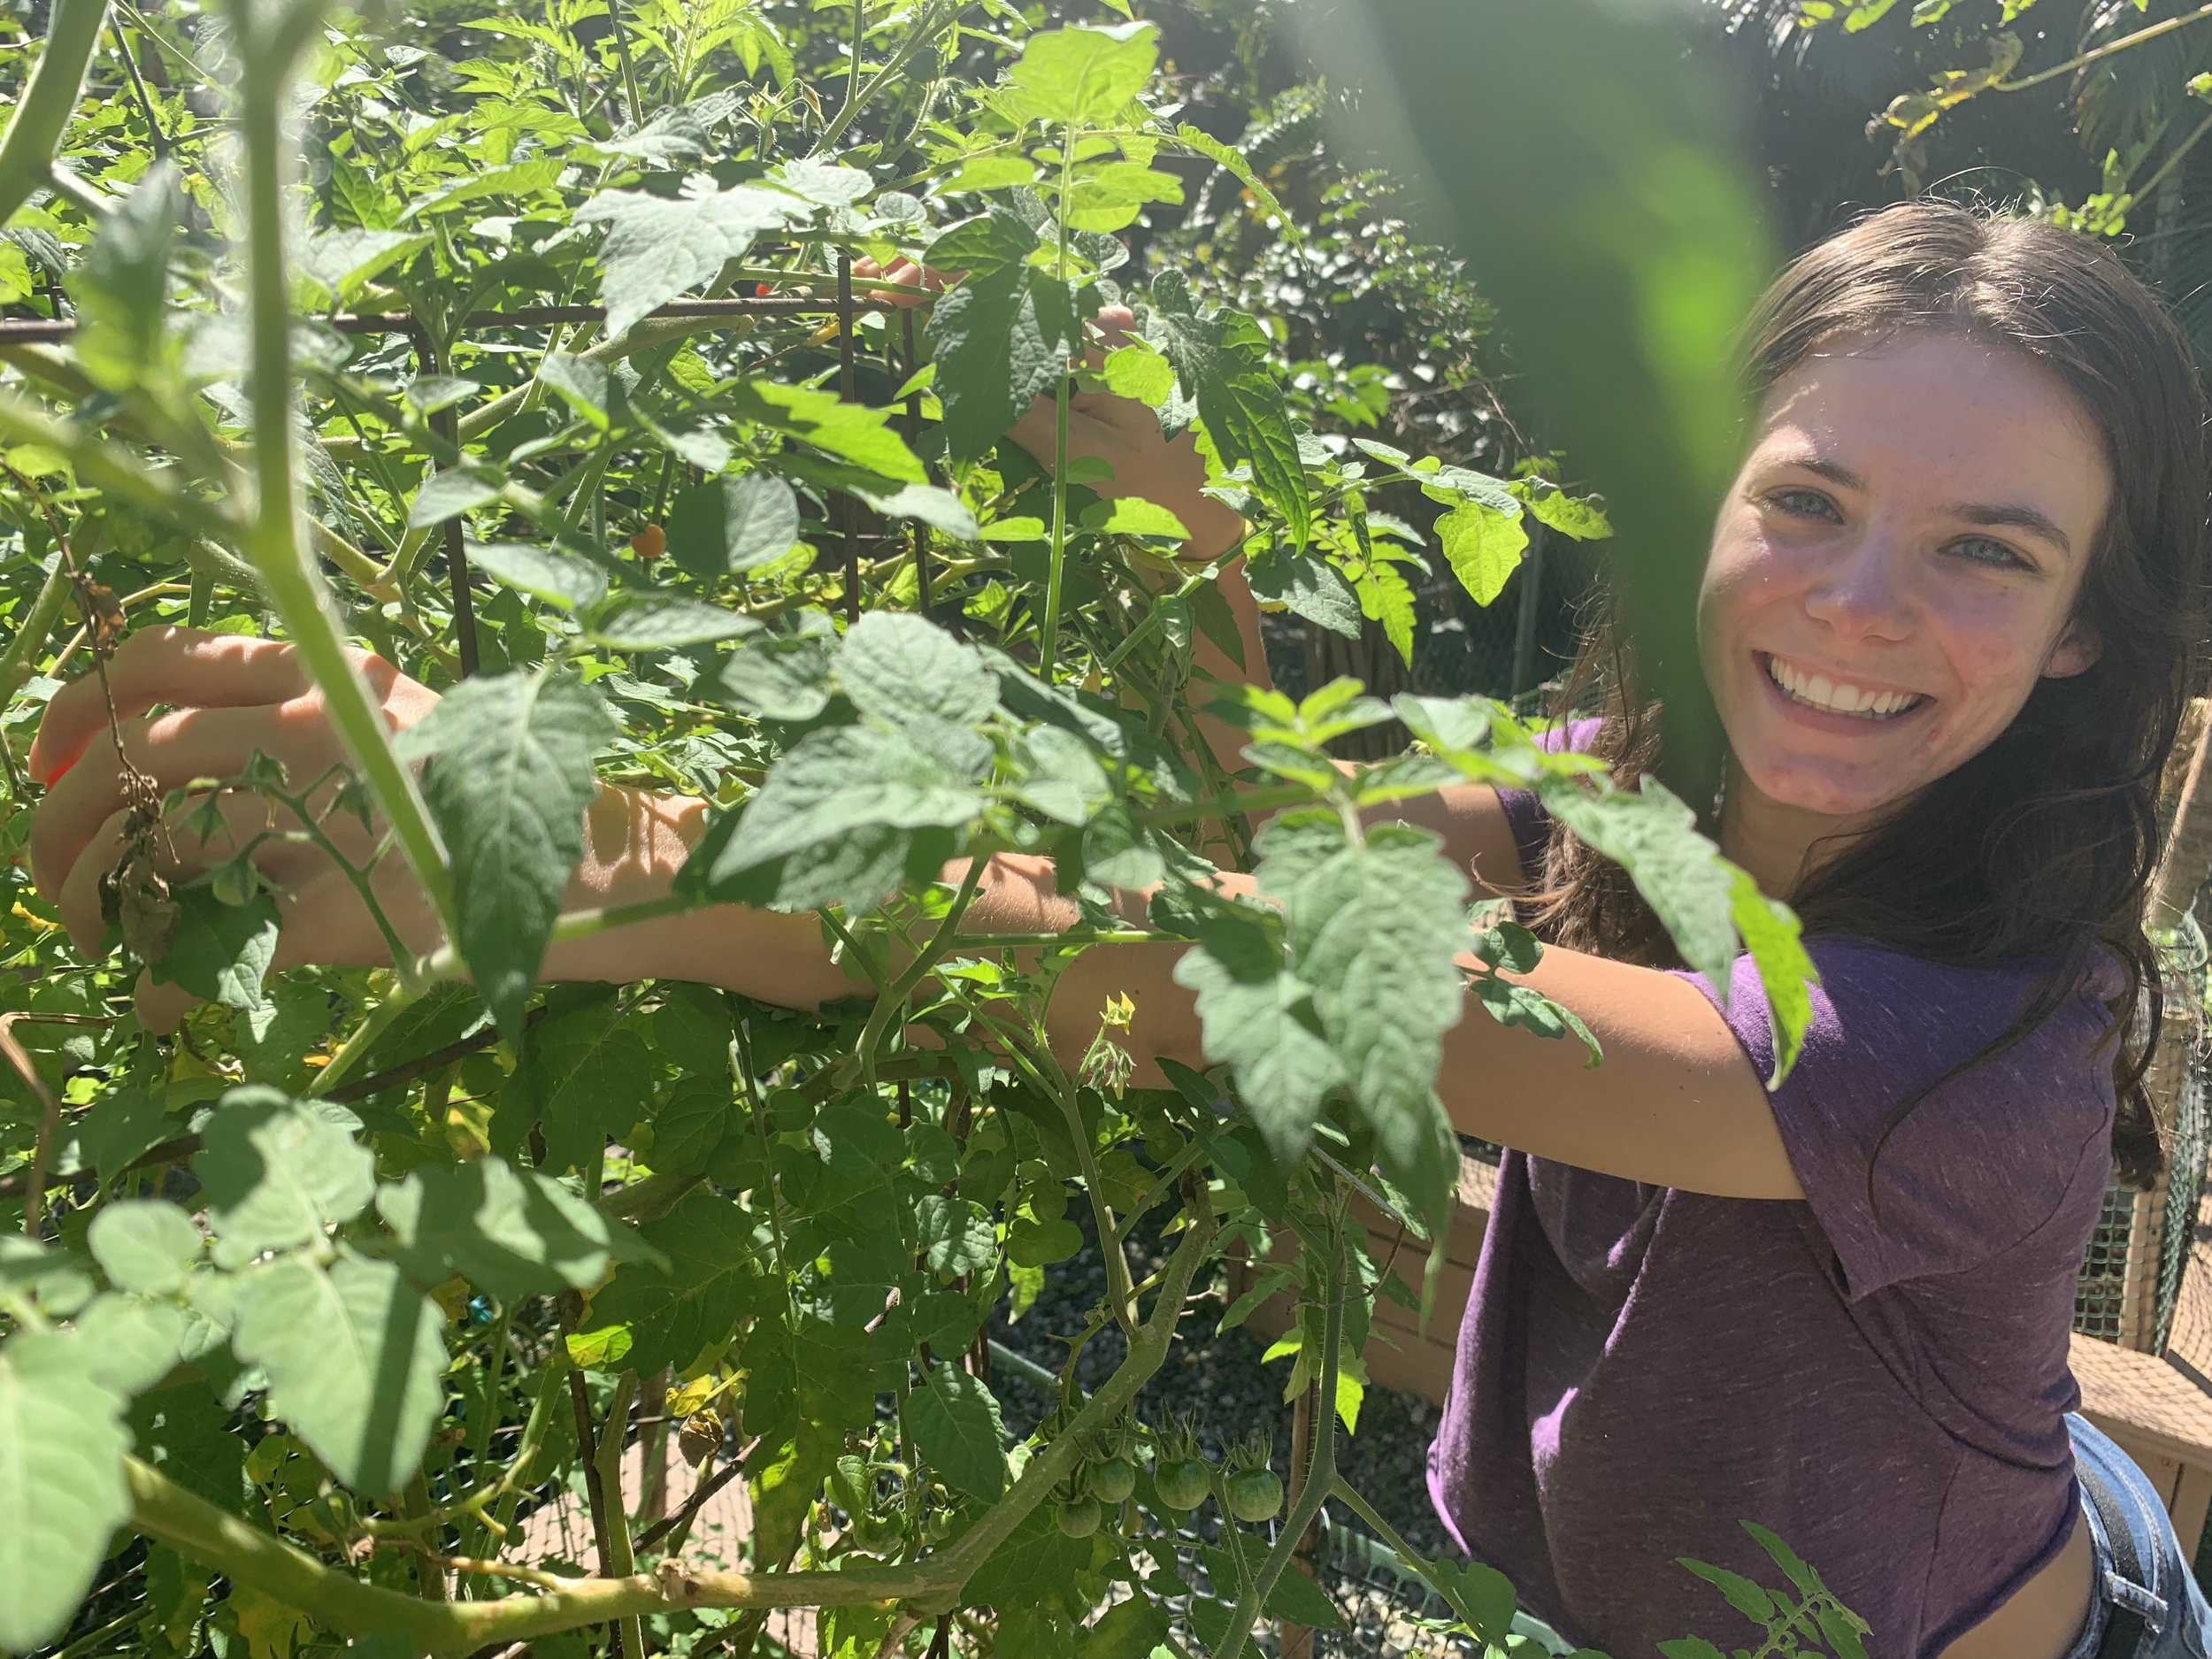 Our interns are welcome to use any of the tropical fruit and produce grown here on the property for their own meals!